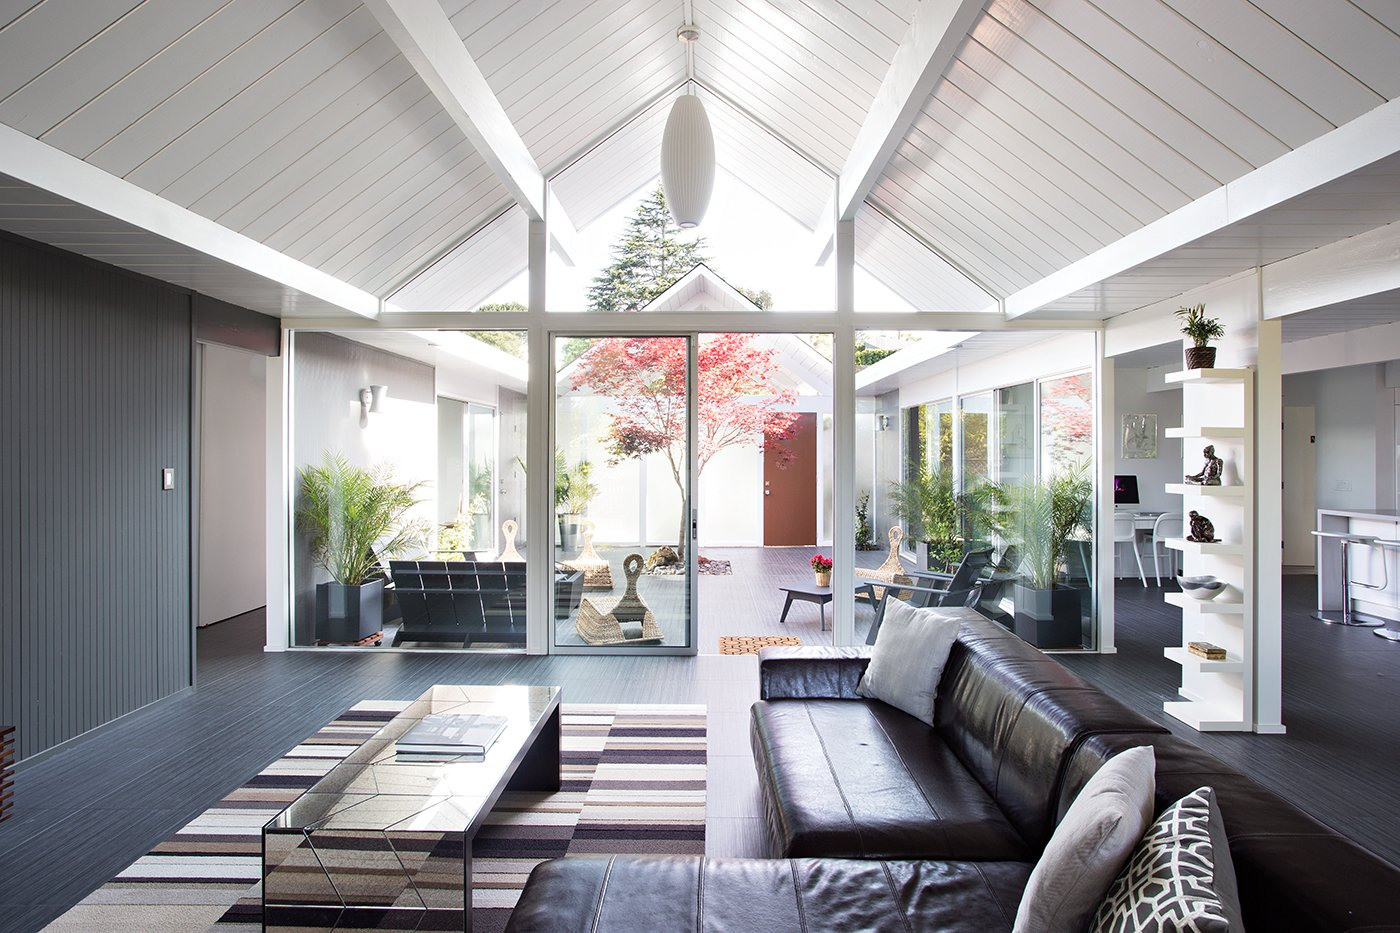 Modern Eichler Renovations Collection Of 20 Photos By Allie Weiss Dwell